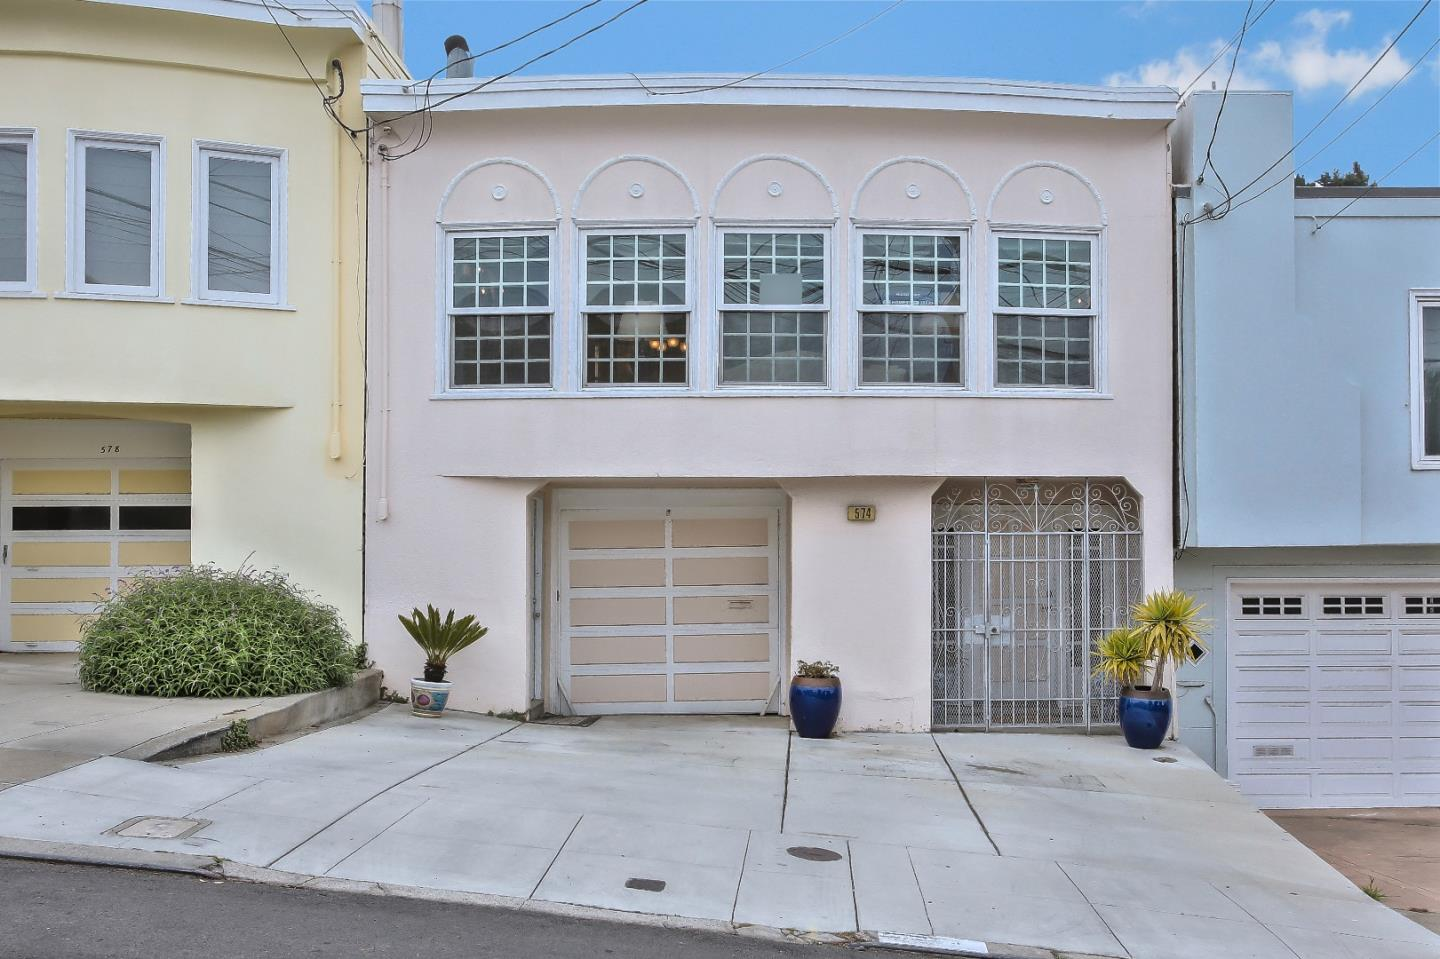 Image for 574 Joost Avenue, <br>San Francisco 94127